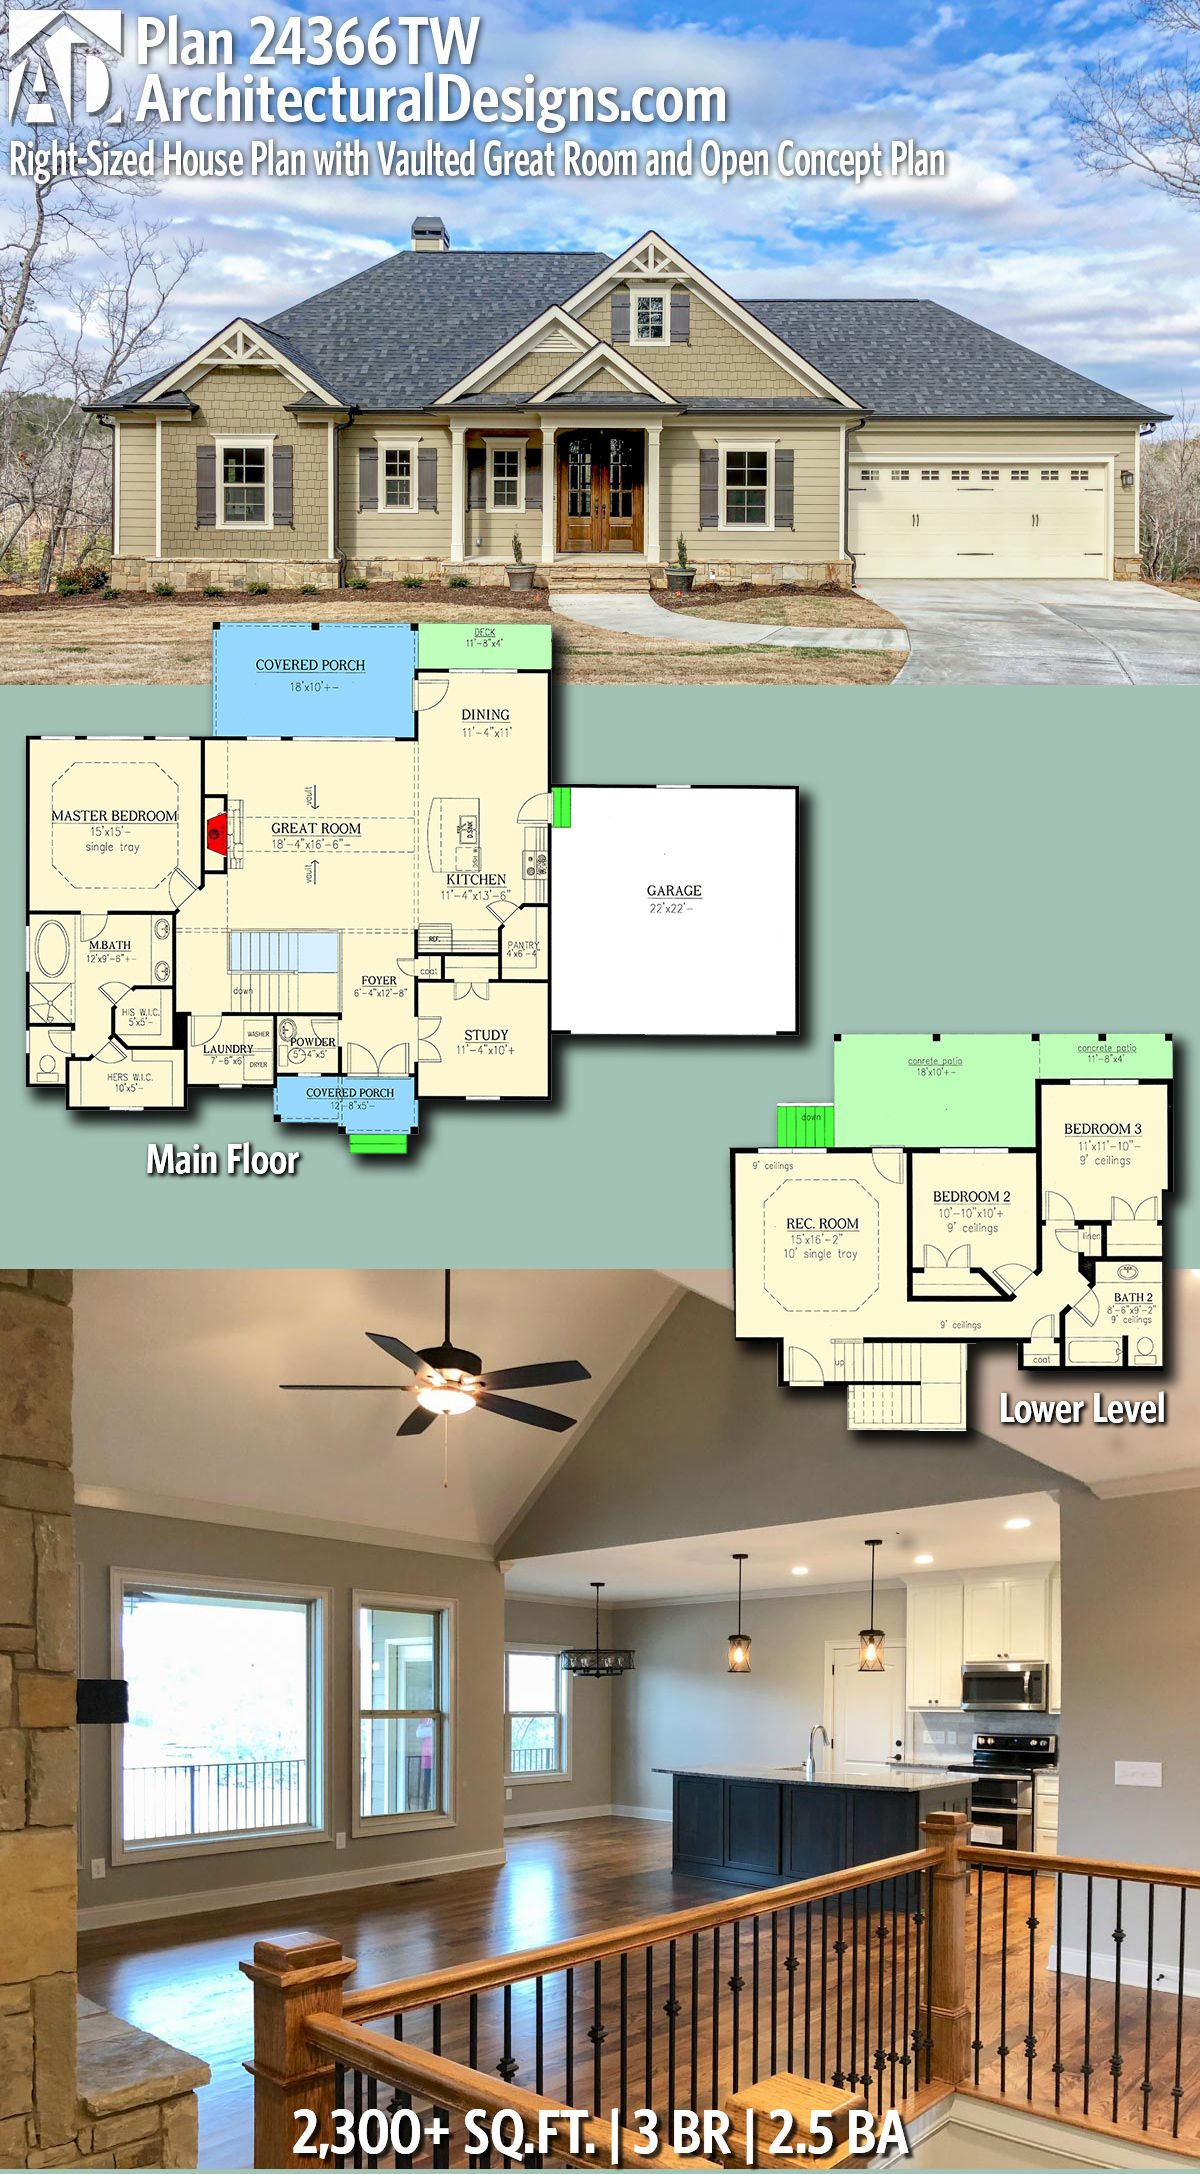 Architectural designs house plan tw has beds and baths square also rh pinterest